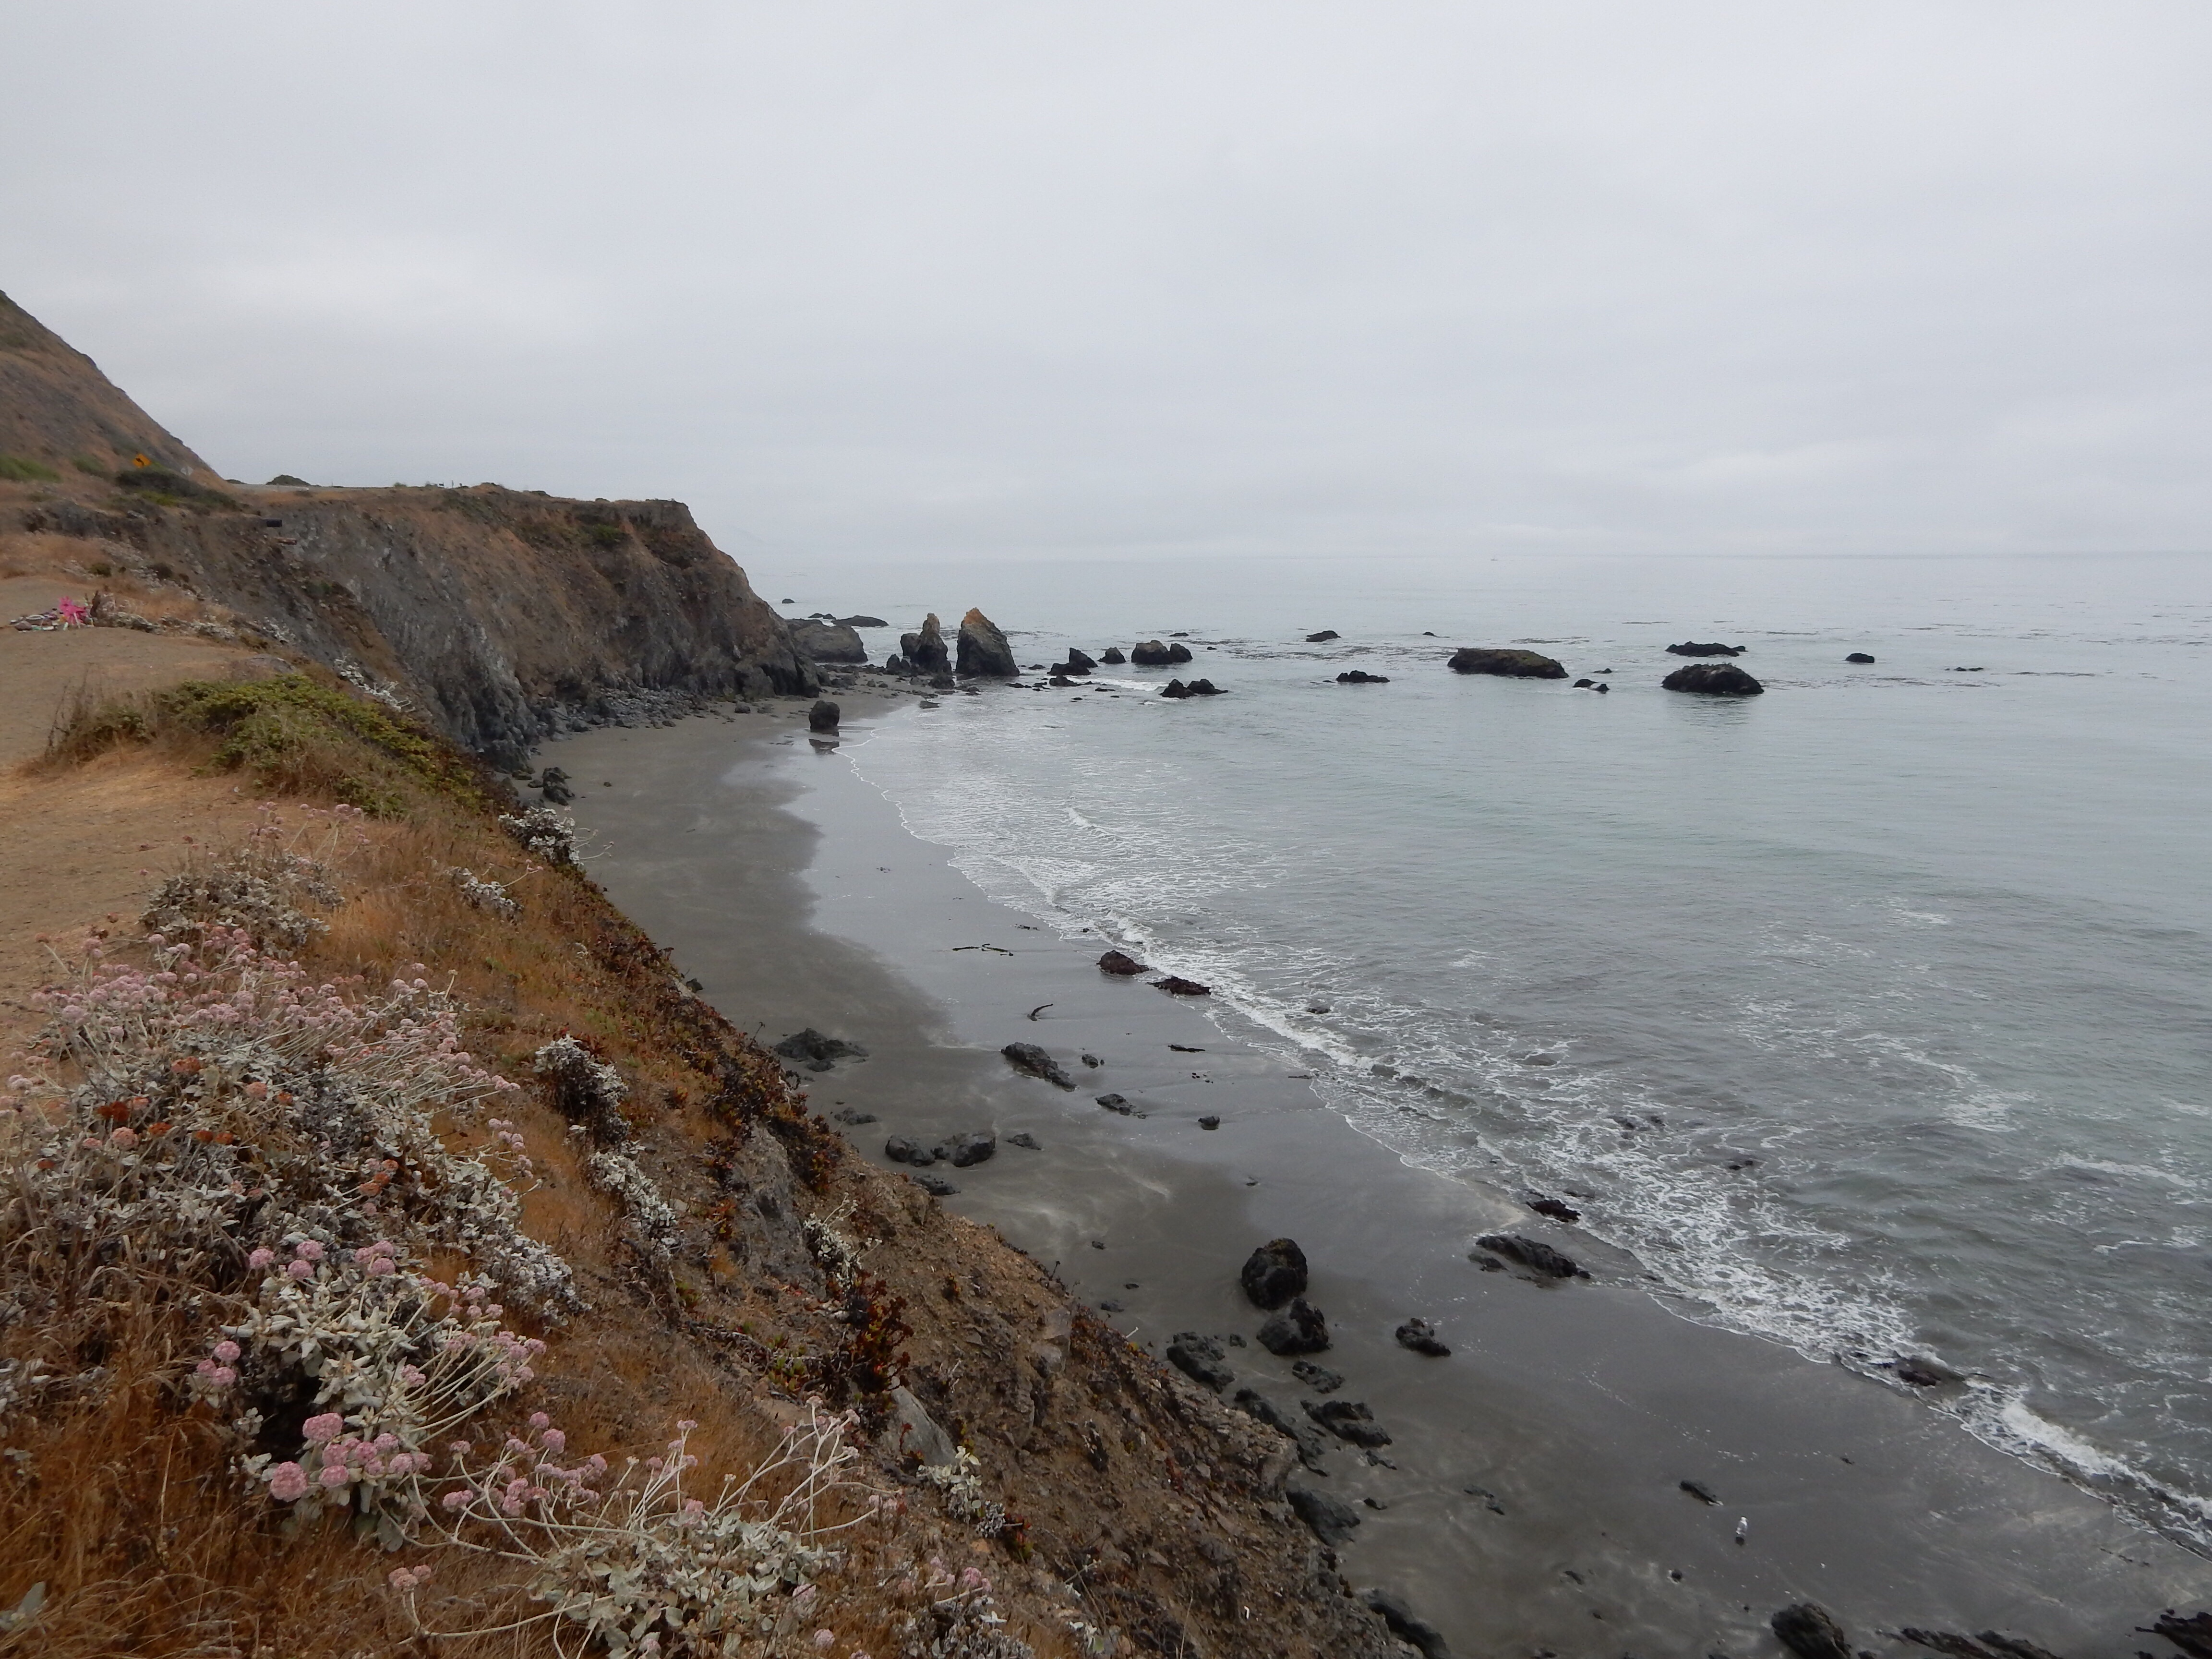 A view south from where California Highway 1 heads inland and leaves the coast behind.